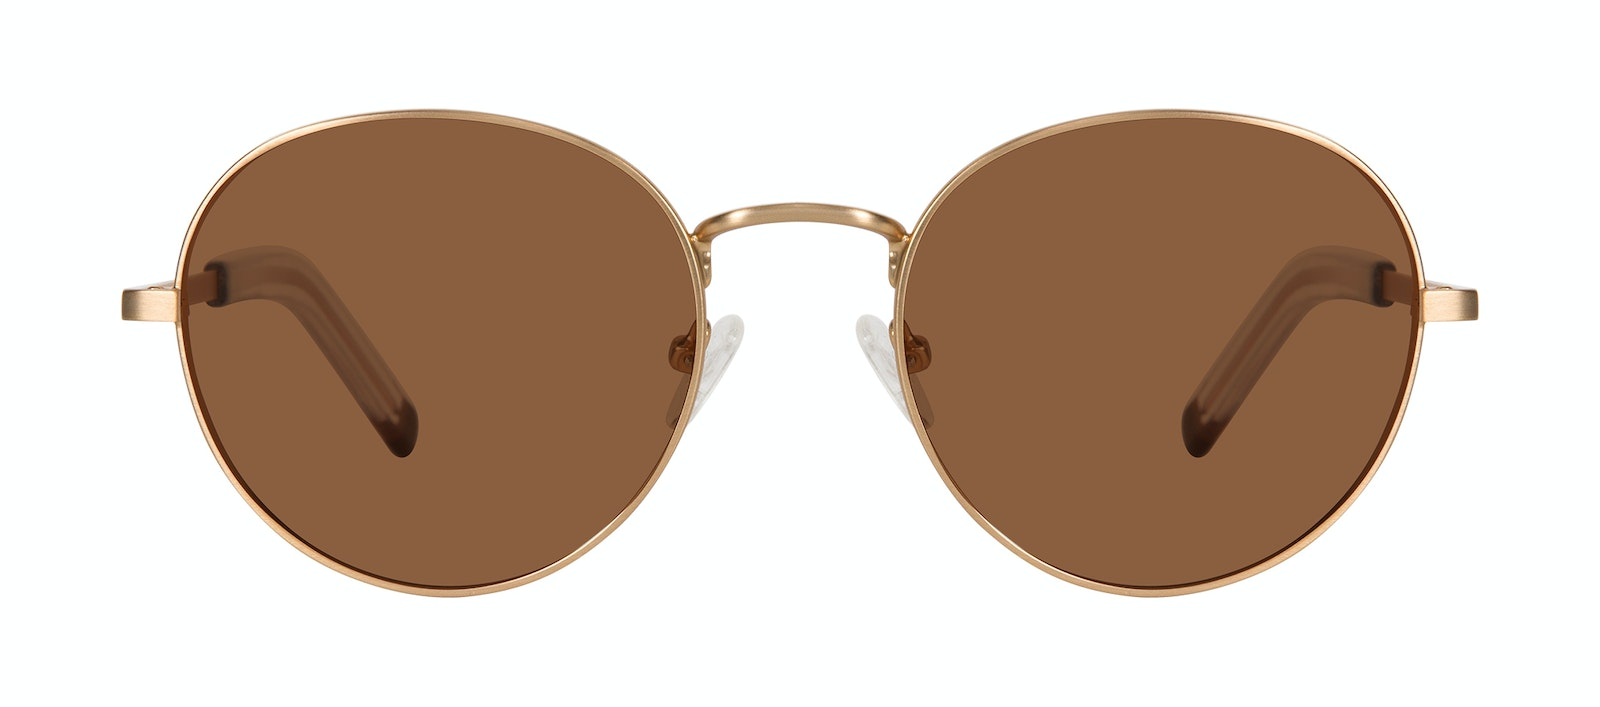 Affordable Fashion Glasses Round Sunglasses Men Lean XL Gold Matte Front